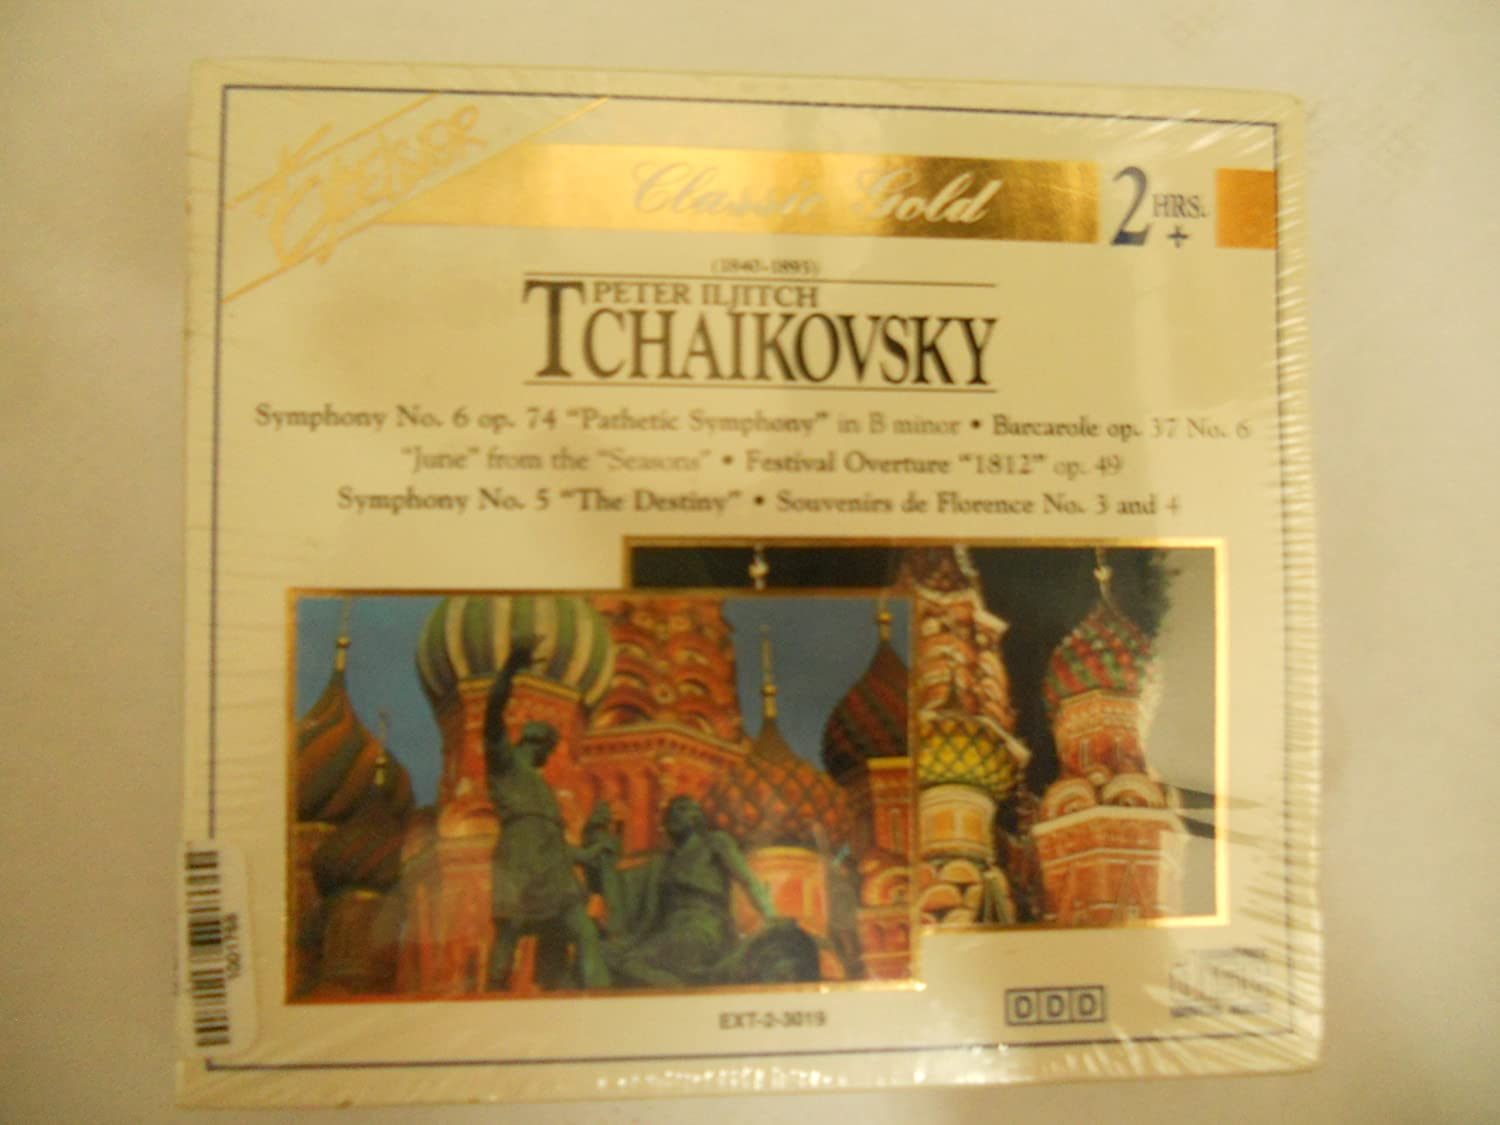 Peter Iljitch Tchaikovsky Challenge the lowest price of Japan ☆ Bombing free shipping box 2-disc